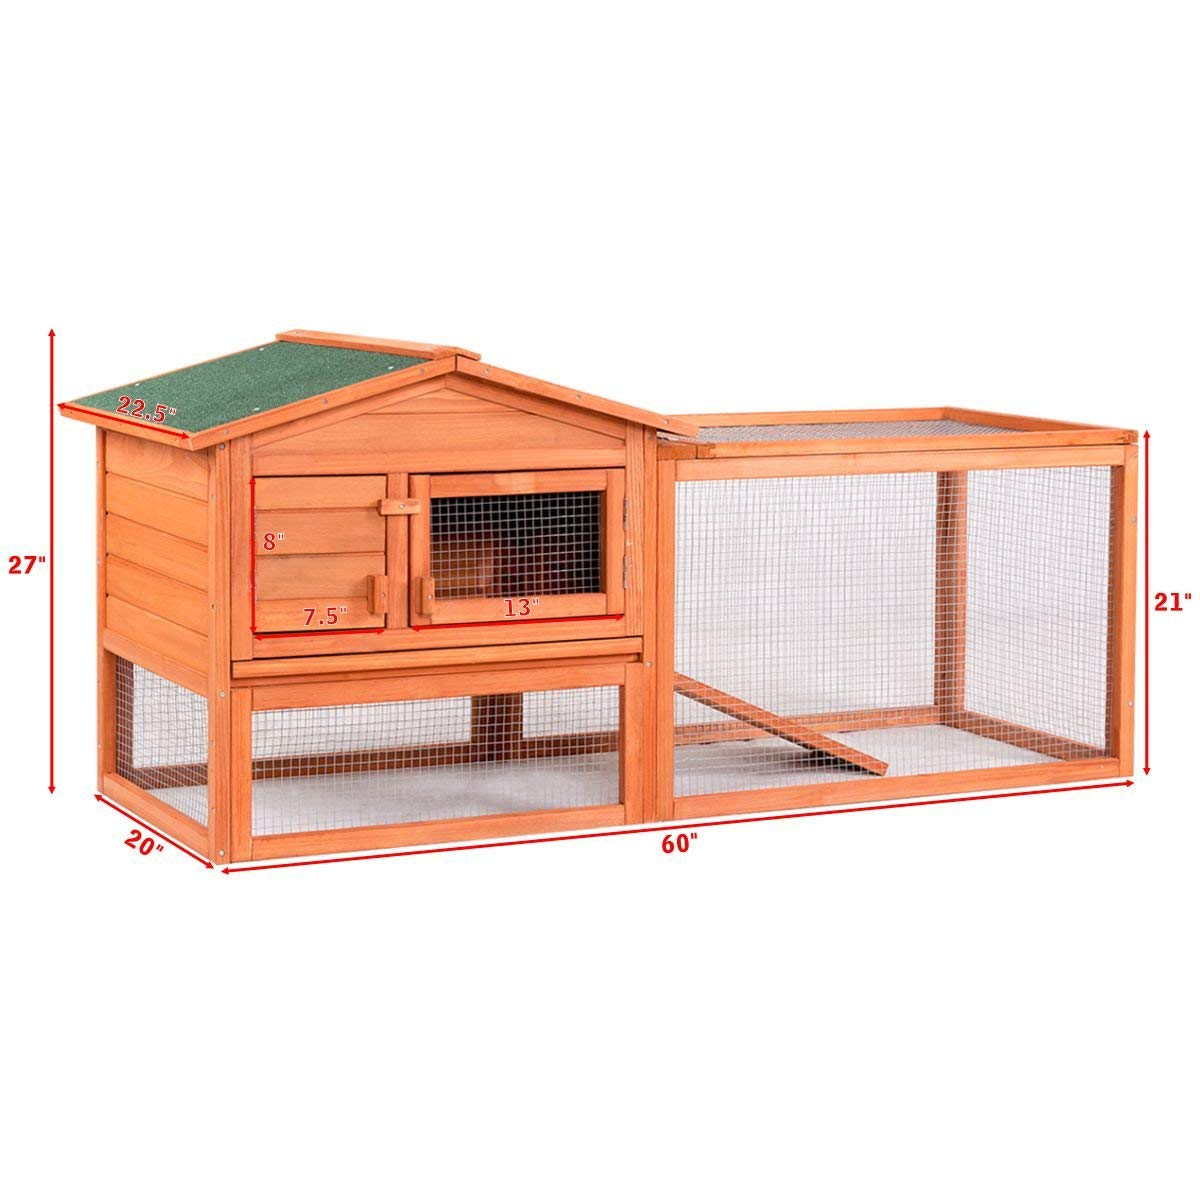 Tangkula Chicken Coop Outdoor Wooden Chicken Coop Garden Backyard Farm Bunny Hen House Rabbit Hutch Small Animal Cage Pet Supplies for Chicken, Duck, Rabbit, etc (61.5'' x 20.5'' x 27''(L x W x H)) by Tangkula (Image #2)